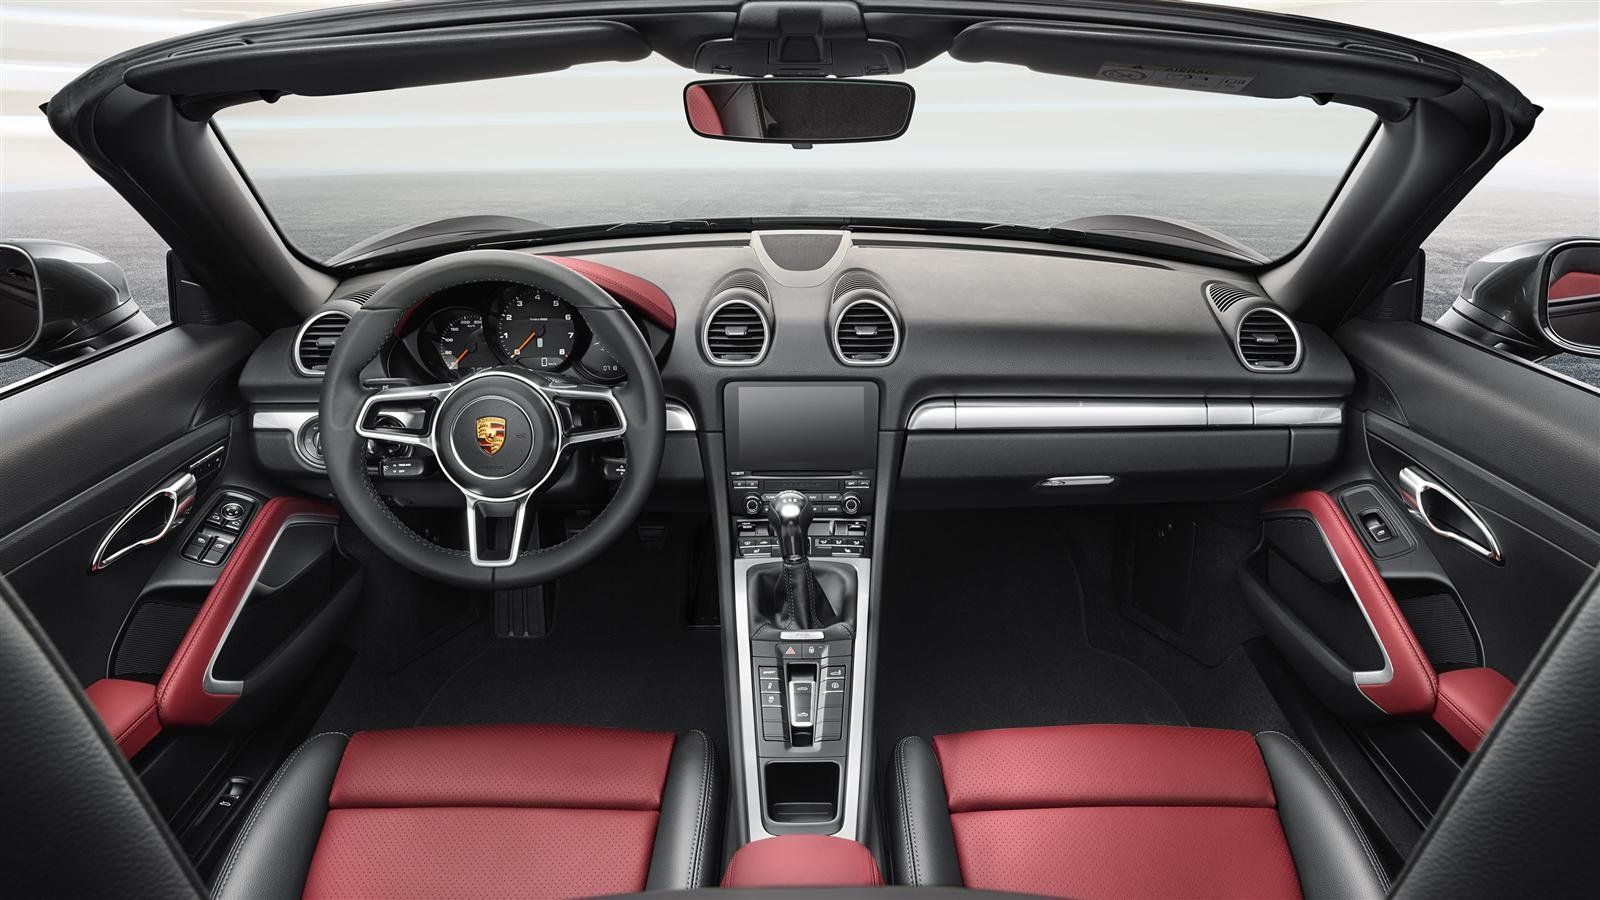 2018 Porsche 718 Boxster Gts Porsche 718 Boxster Boxster Porsche Boxster